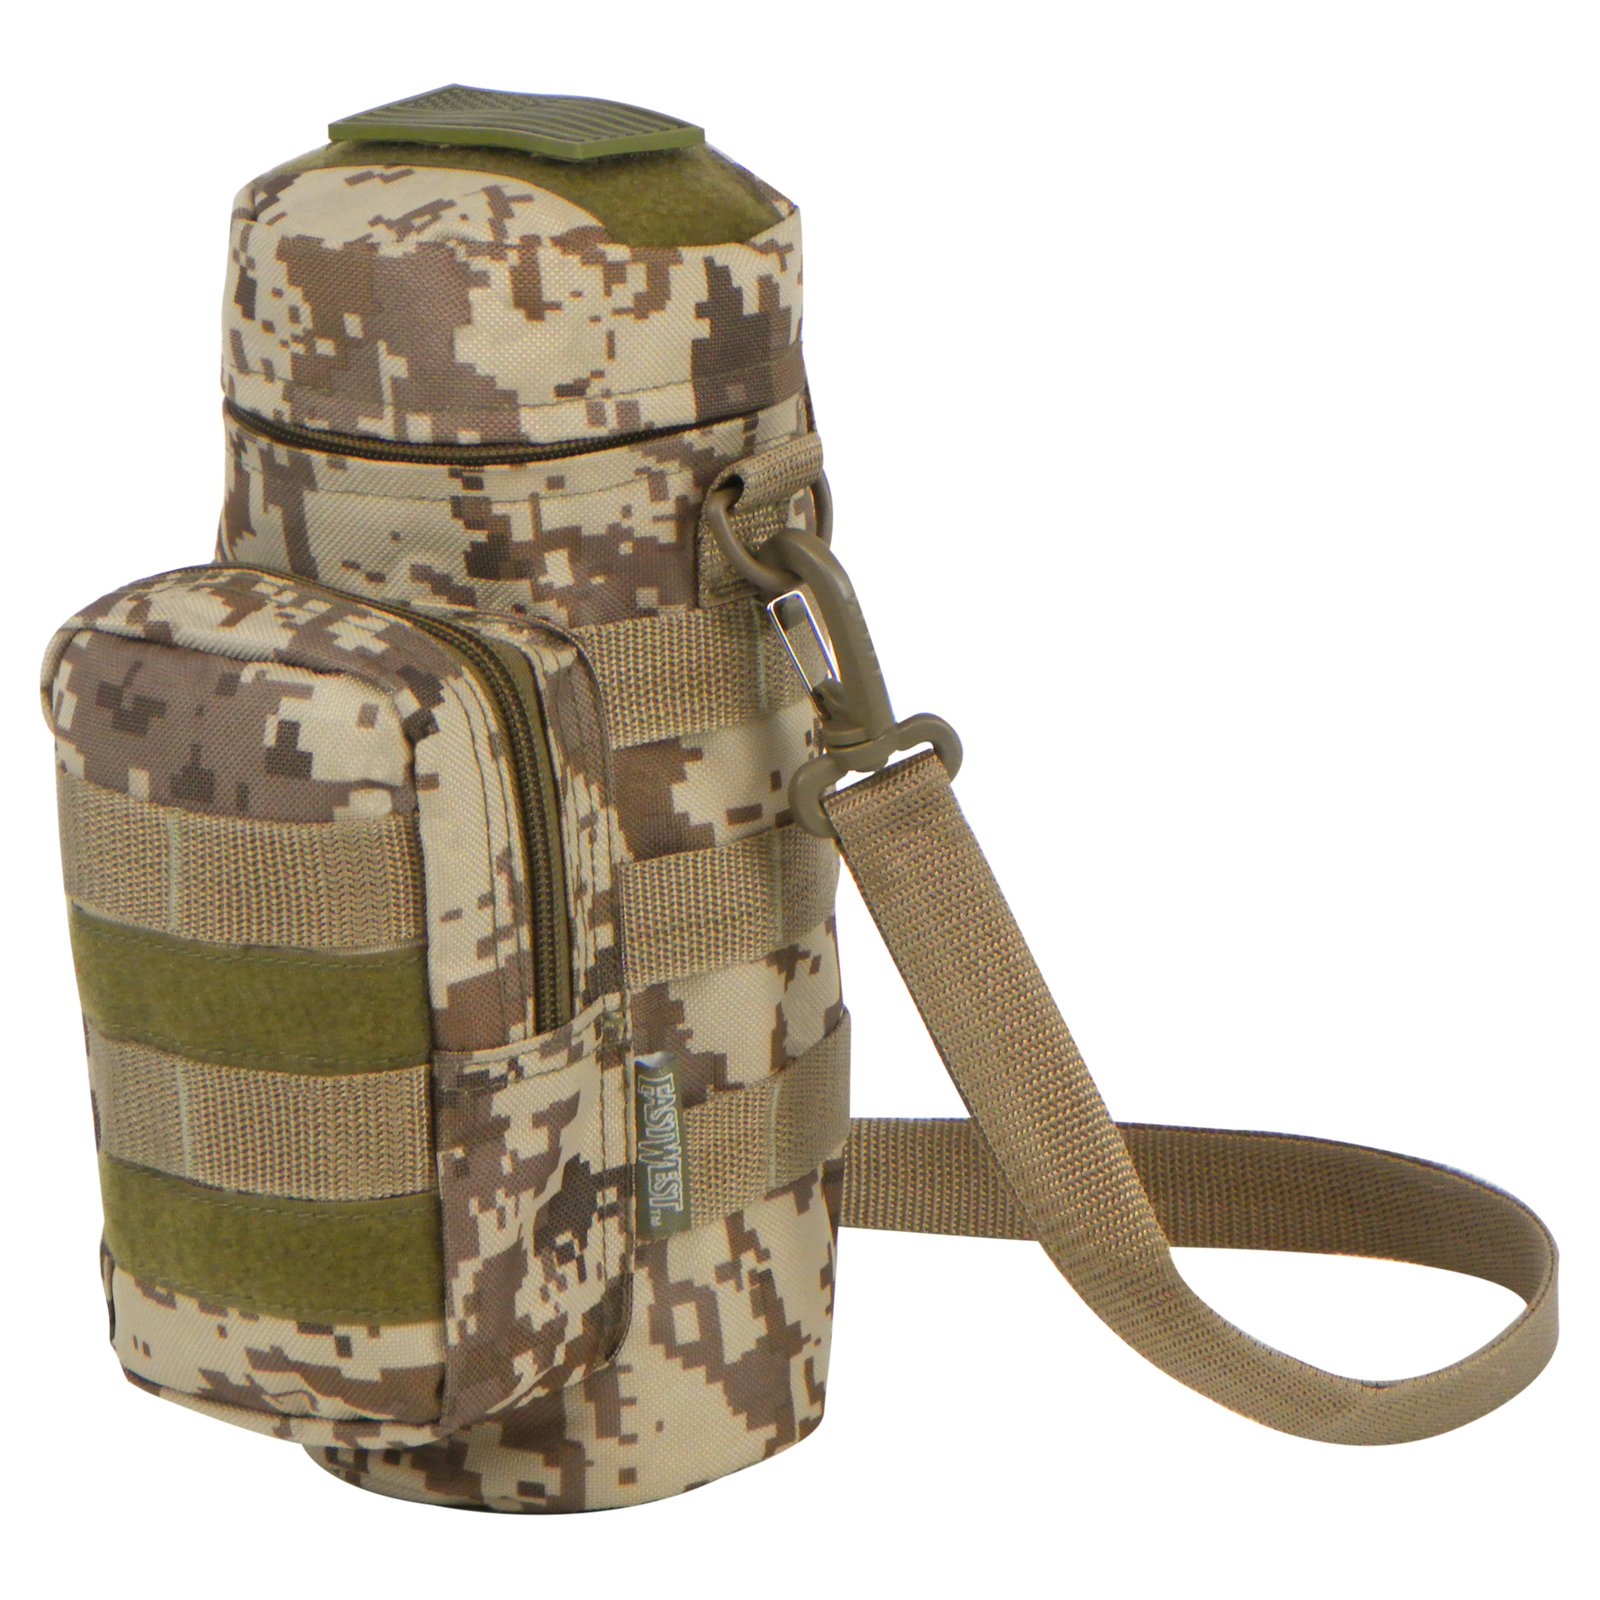 East West U.S.A. Tactical Molle ACU Water Bottle Pouch & Military Gear Bag